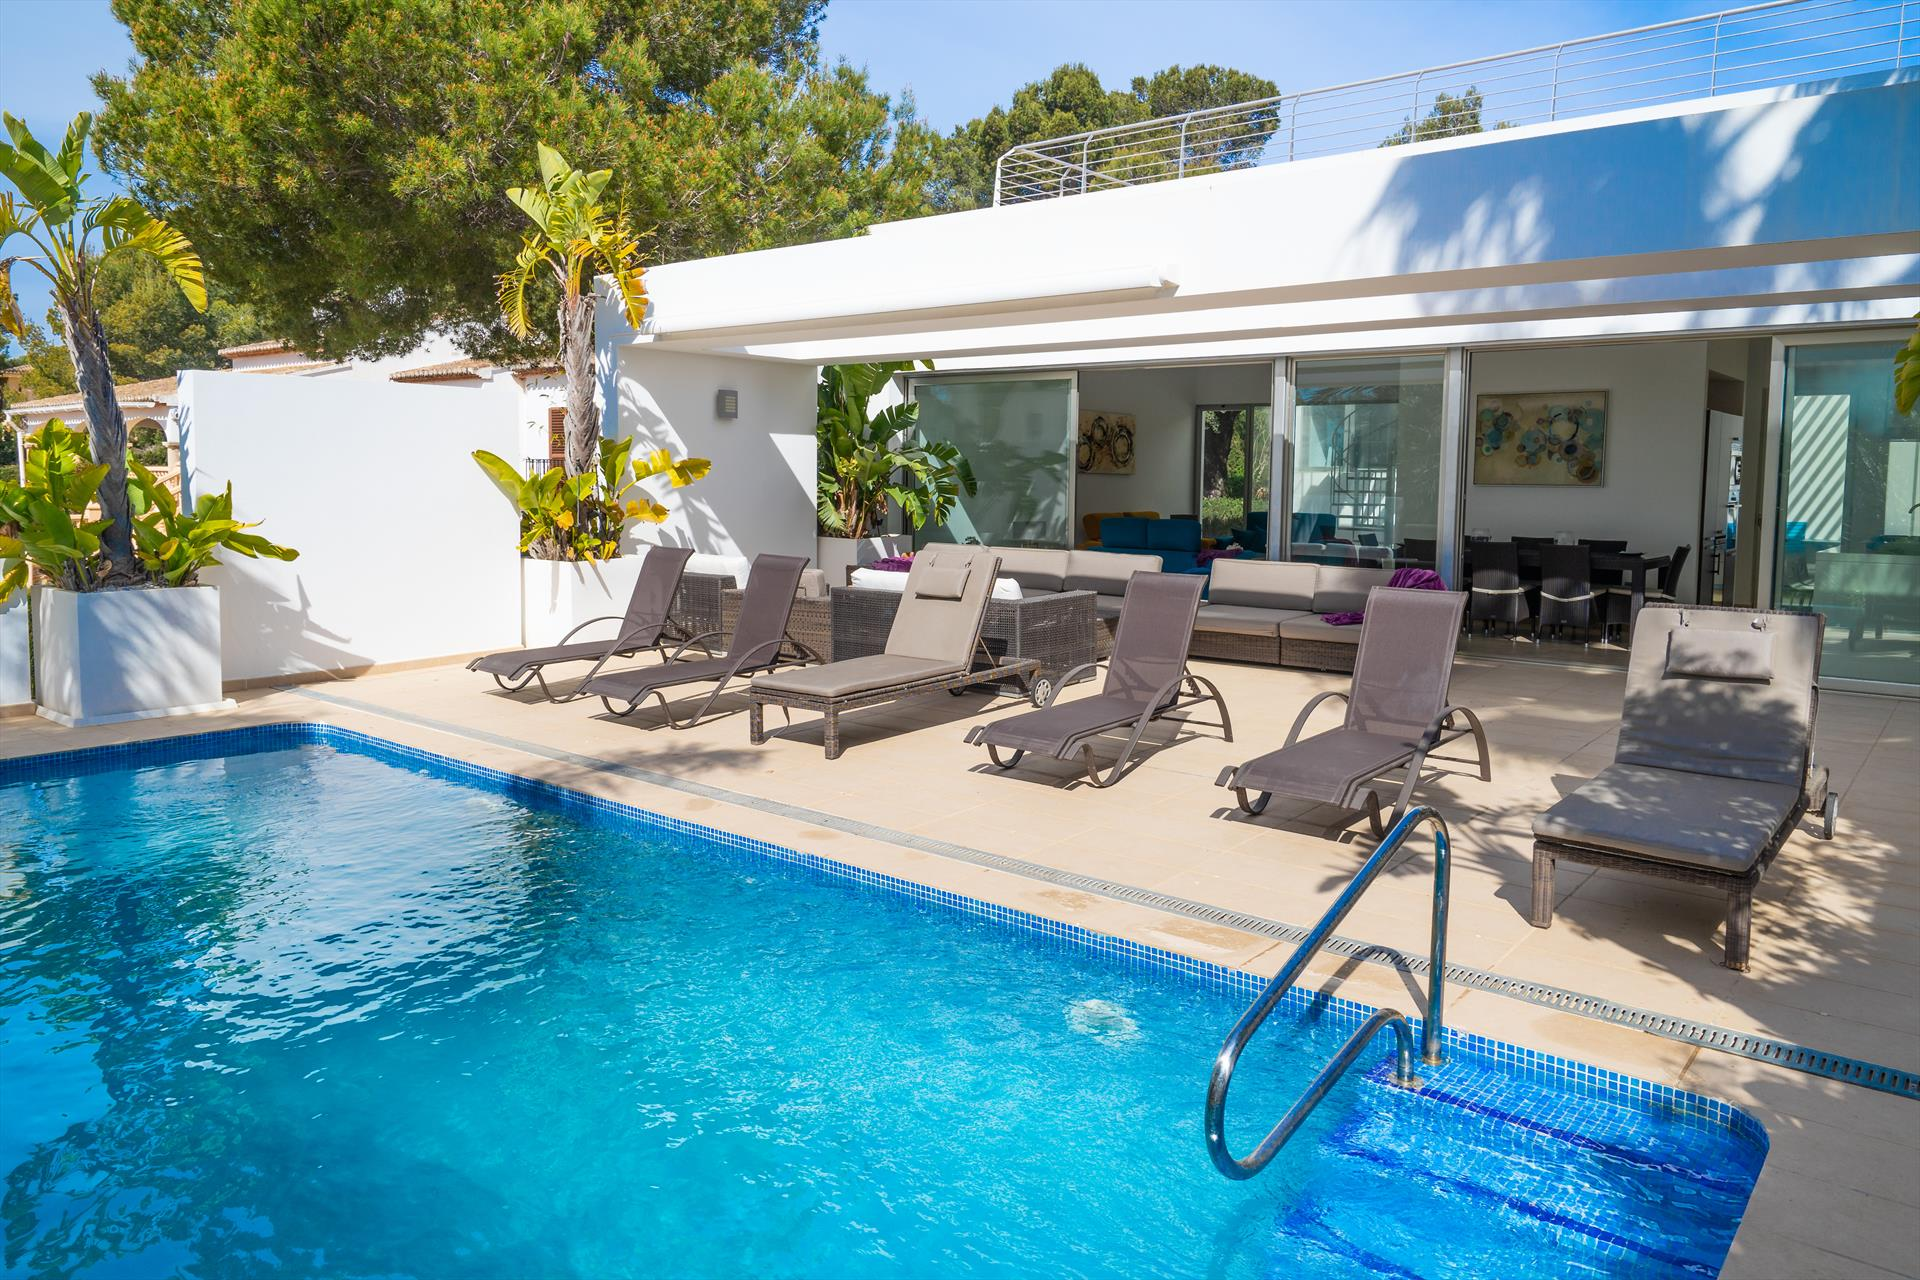 Casa Elche 6 pax, Modern and nice villa  with private pool in Javea, on the Costa Blanca, Spain for 6 persons.....